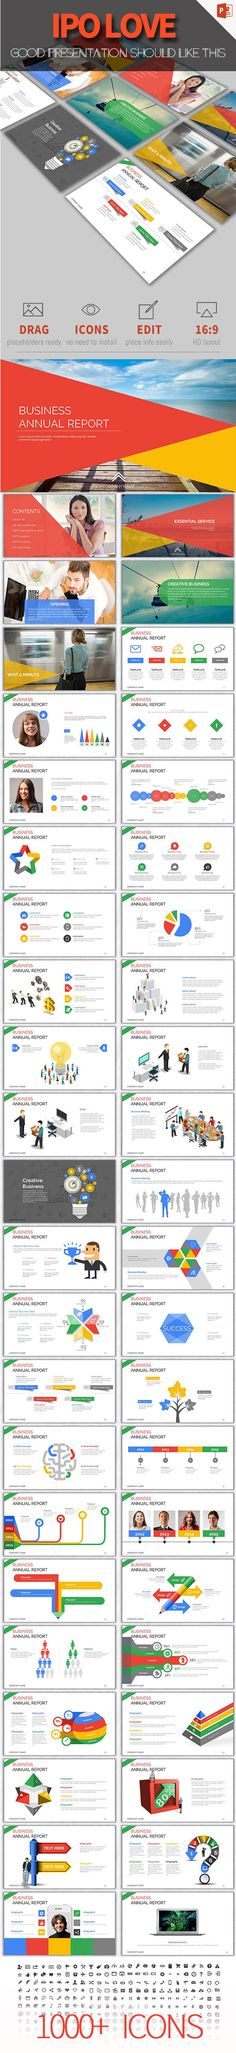 Modern google slide business presentation template for report and - business presentation template